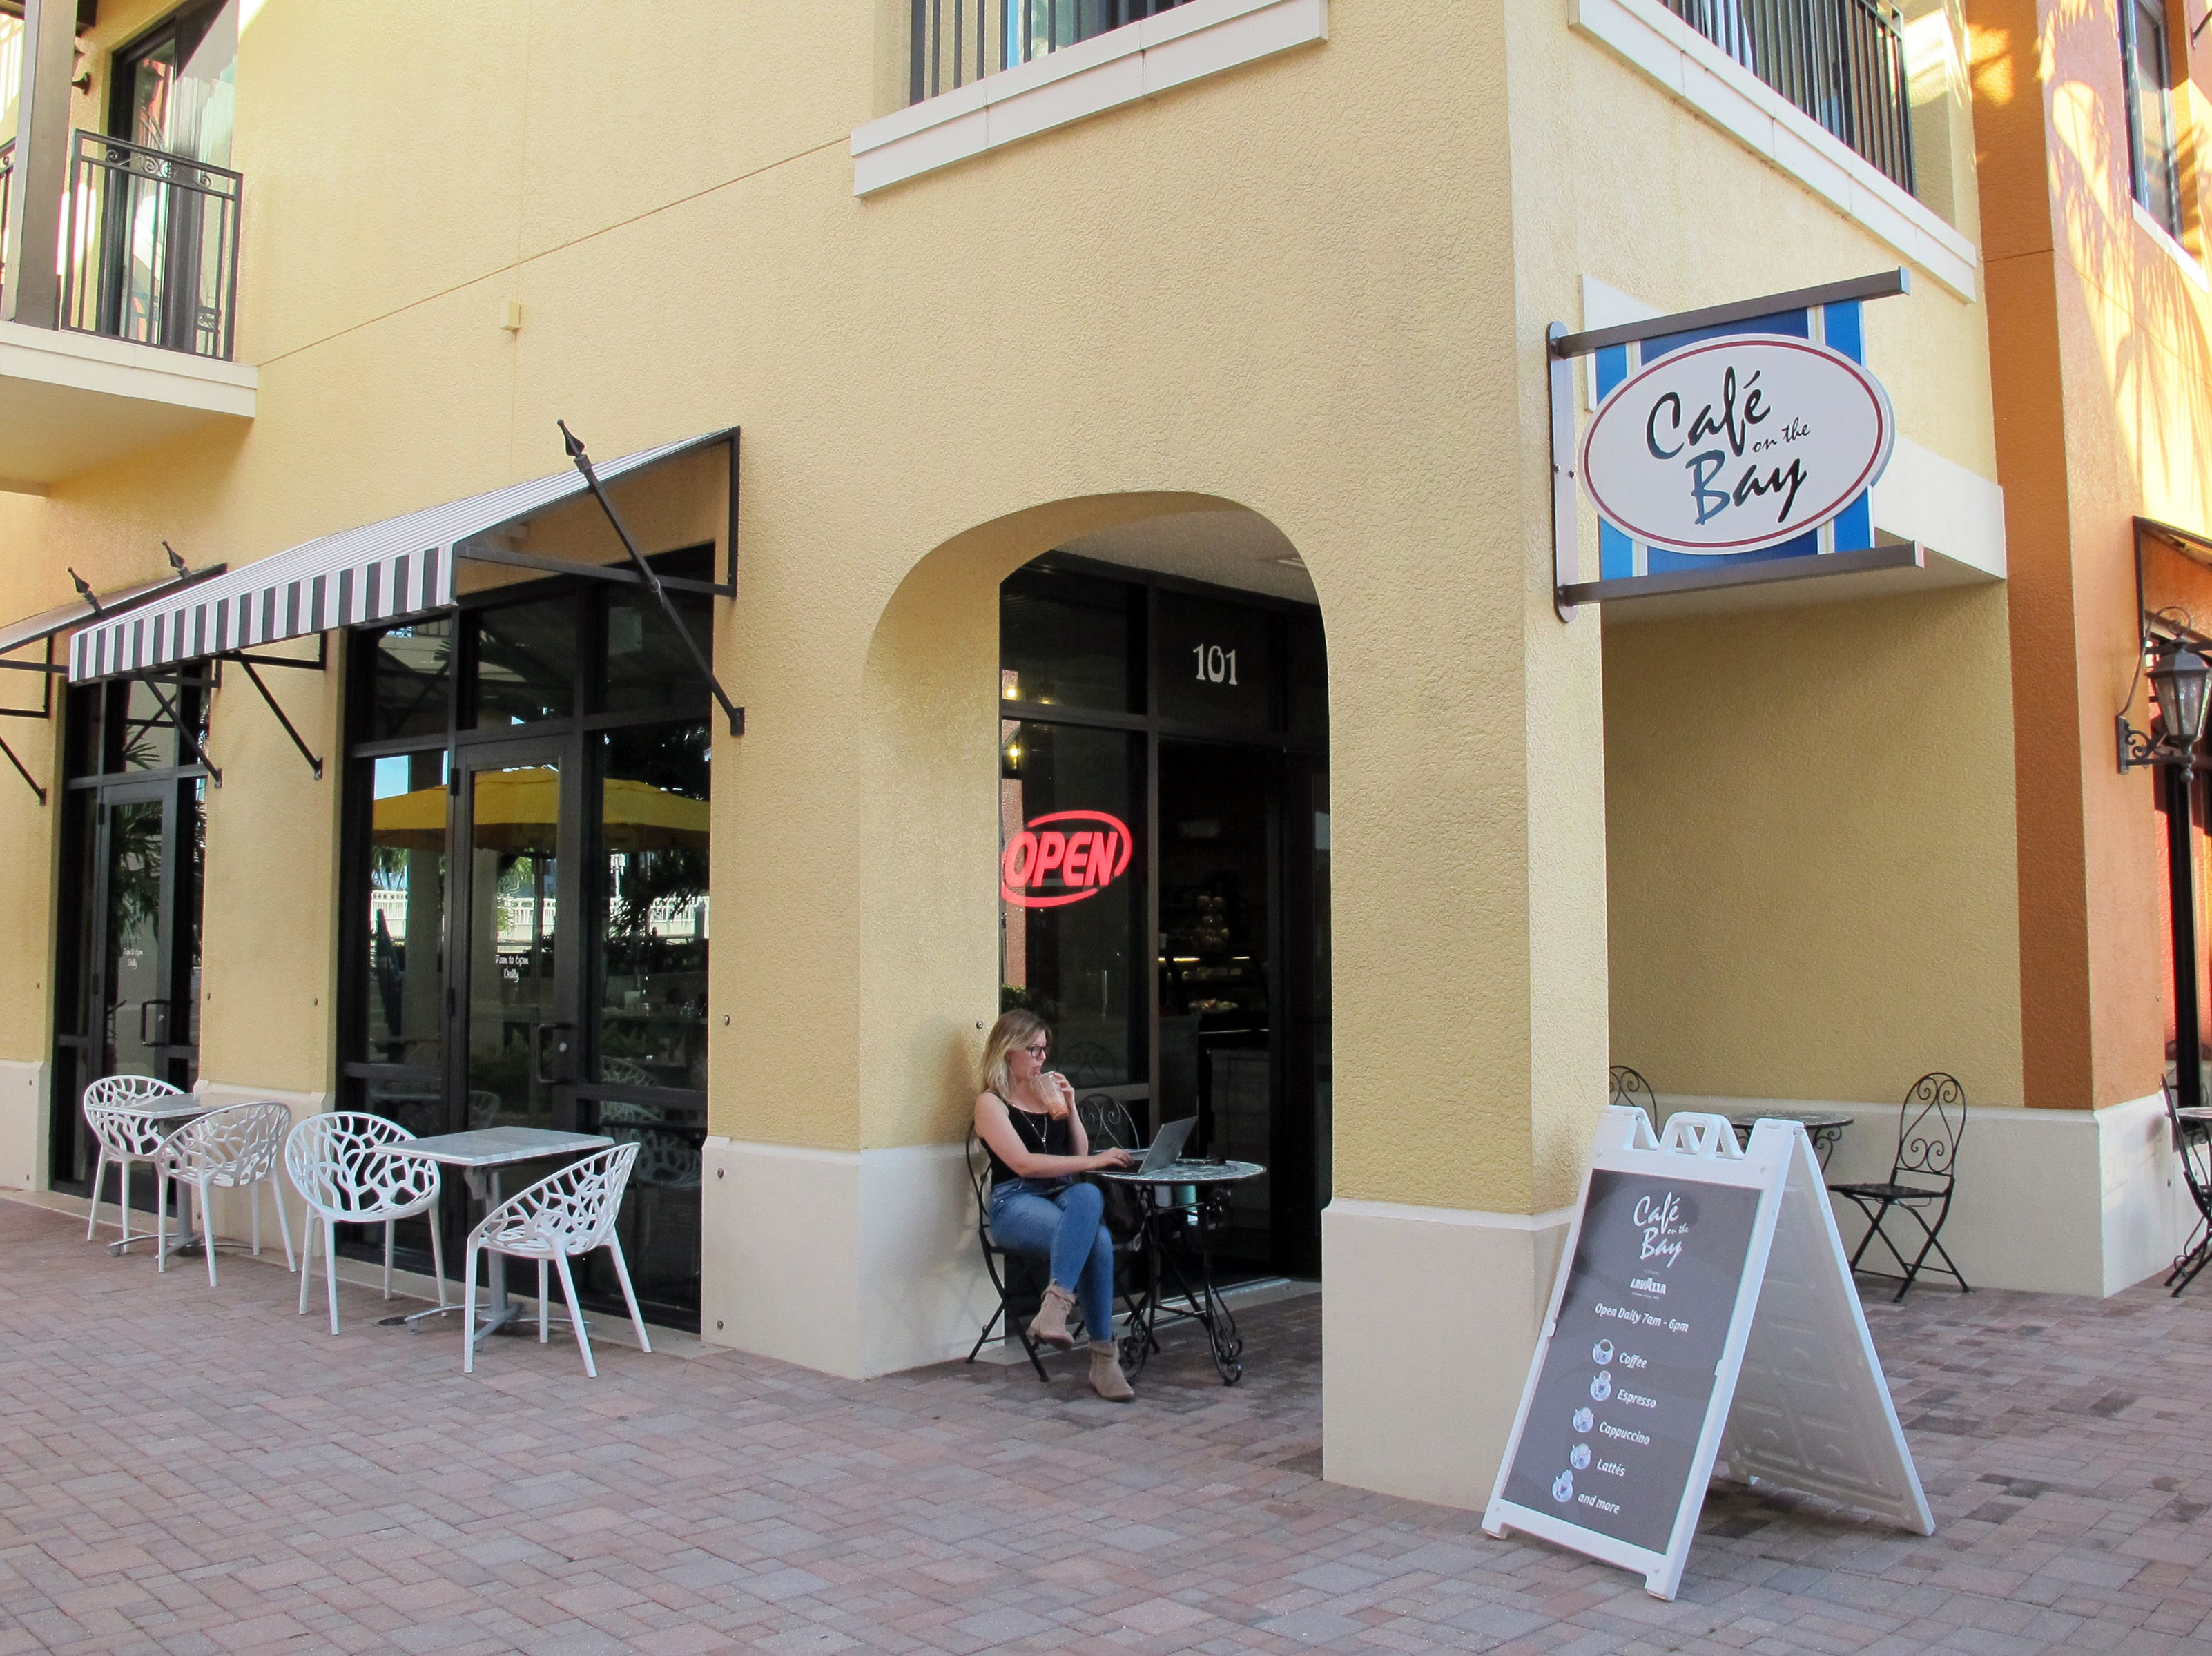 Cafe on the Bay coffee shop and eatery opened in September 2018, replacing Catalina Café at Naples Bay Resort & Marina, 1500 Fifth Ave. S.